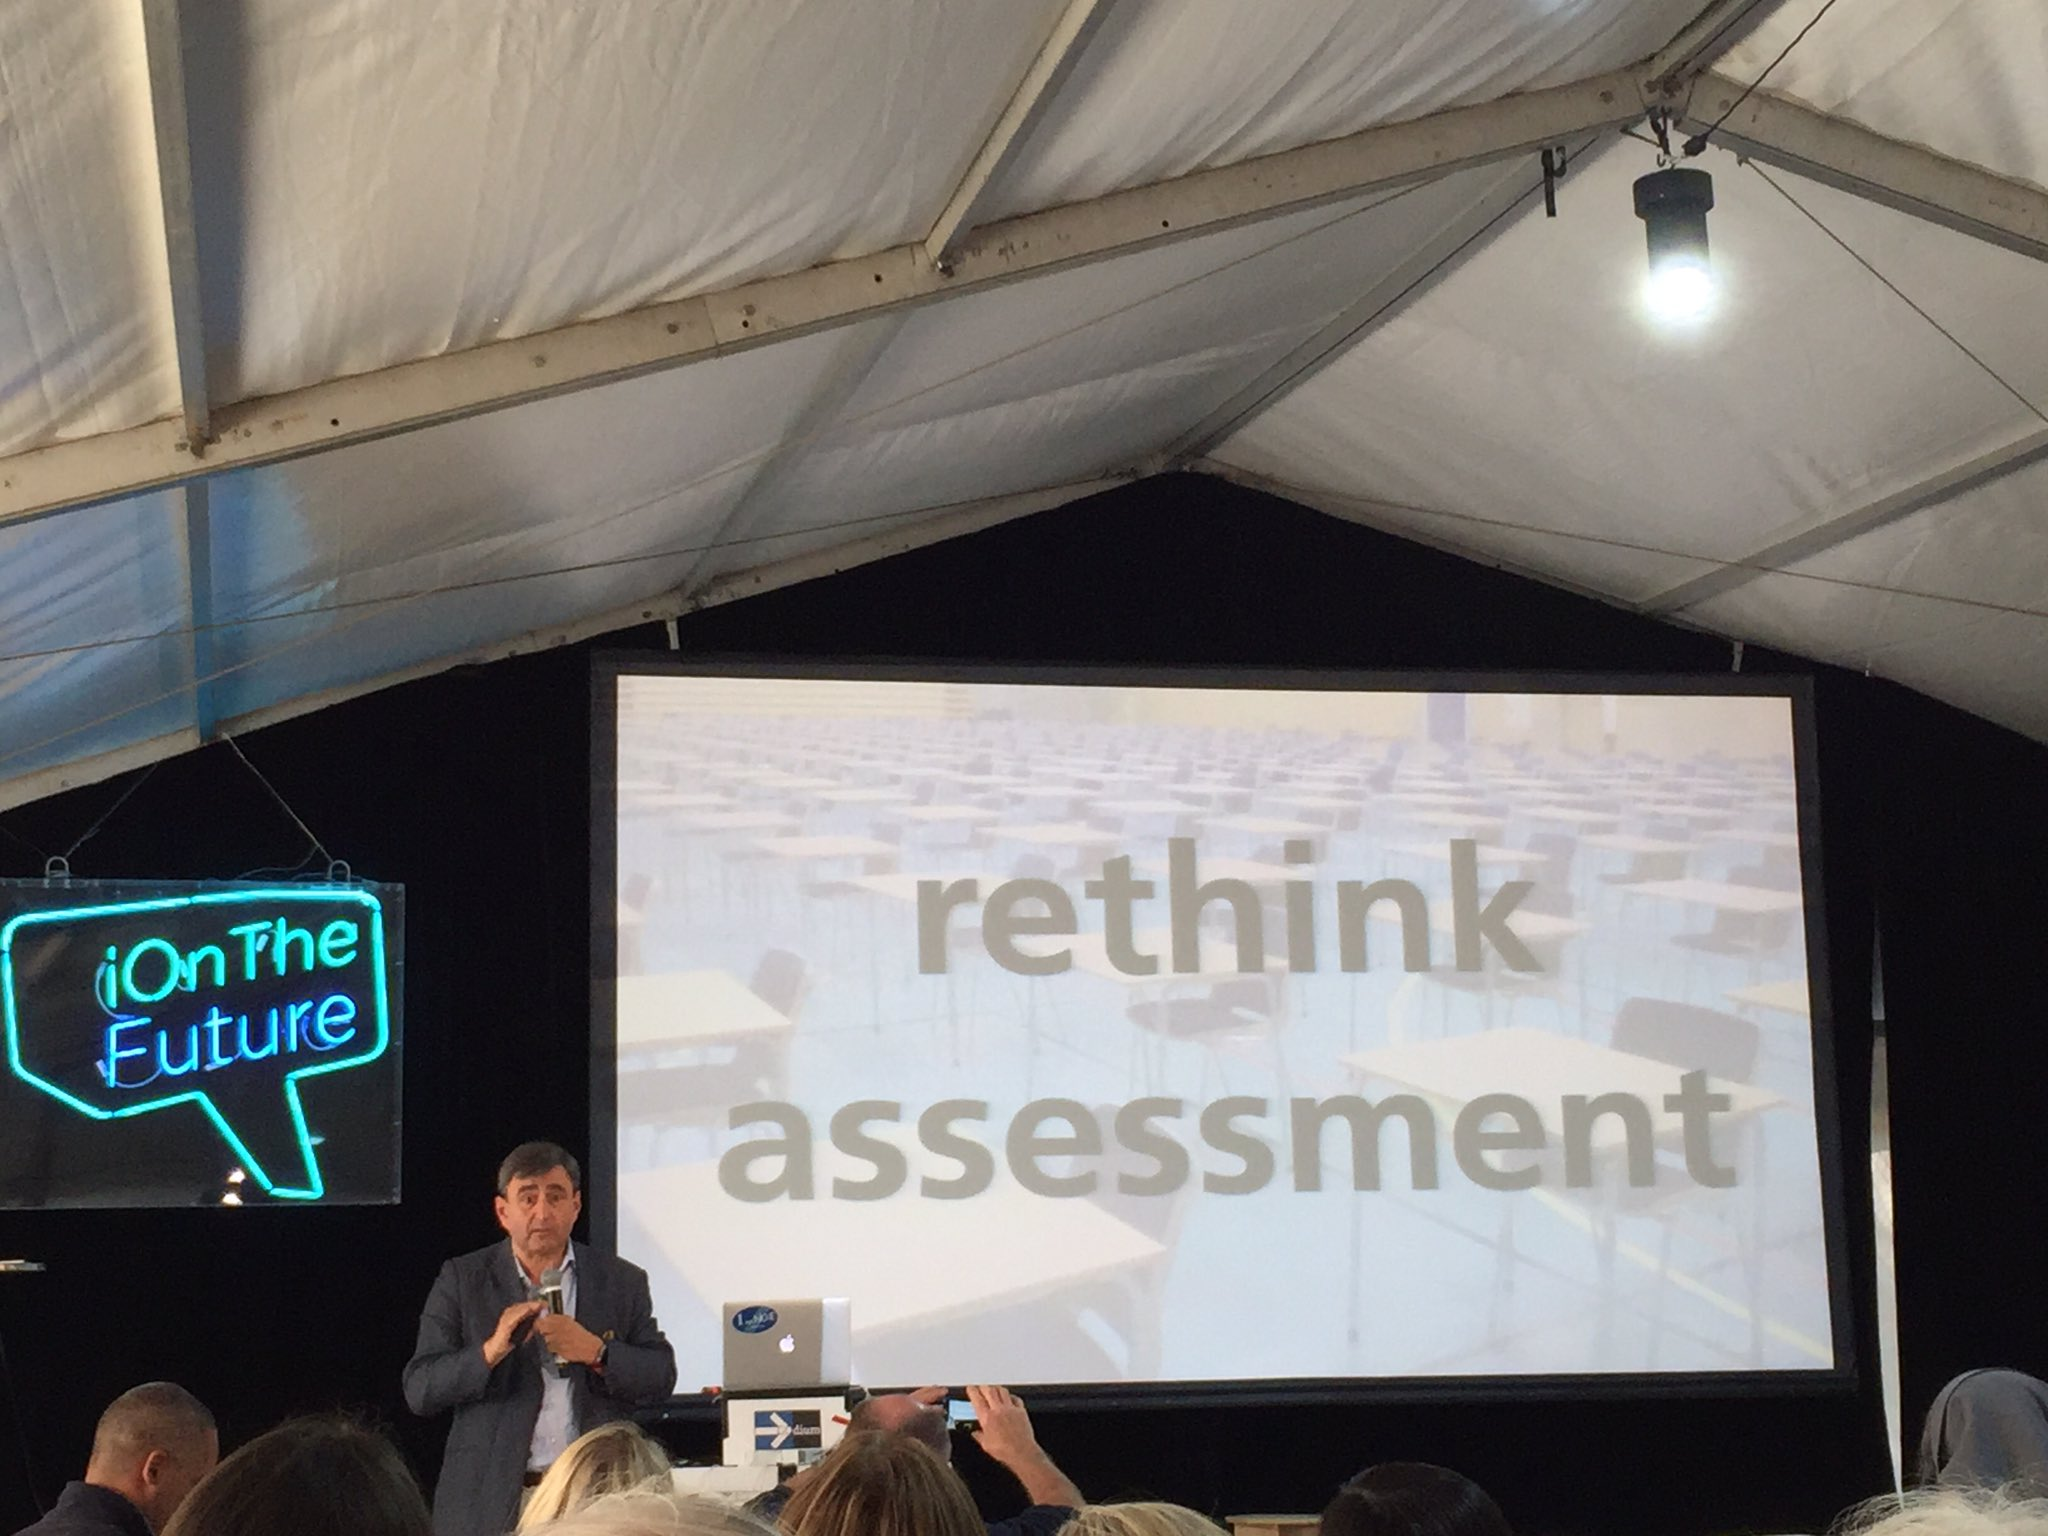 @ericmazur makes a call to action #iOTF4 https://t.co/4fObcSVDbj